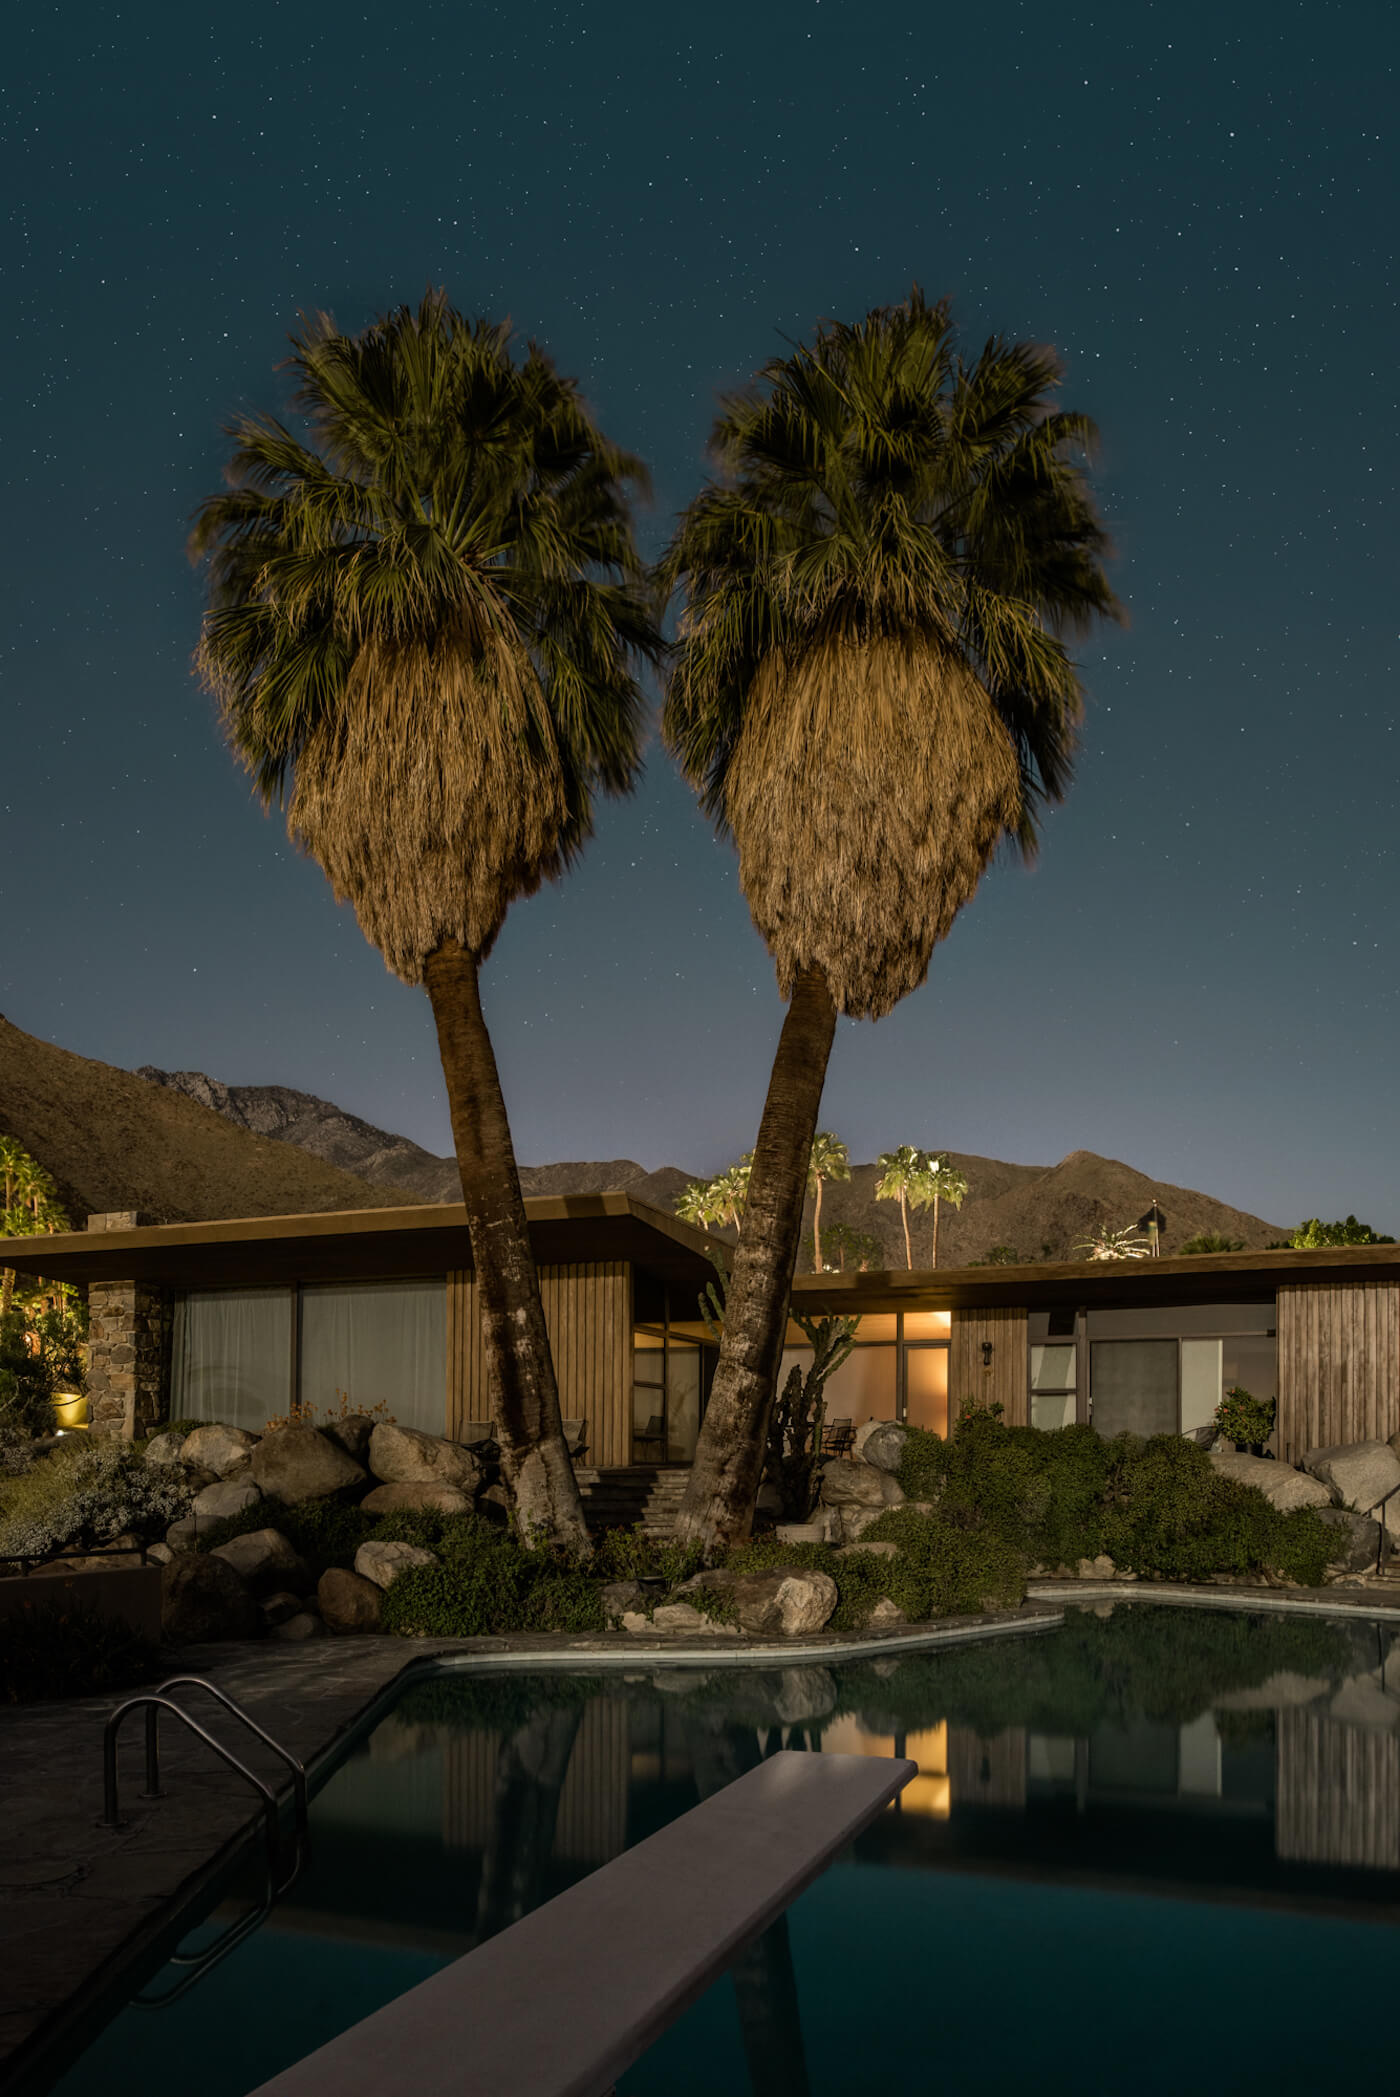 Midnight Modern, Tom Blachford